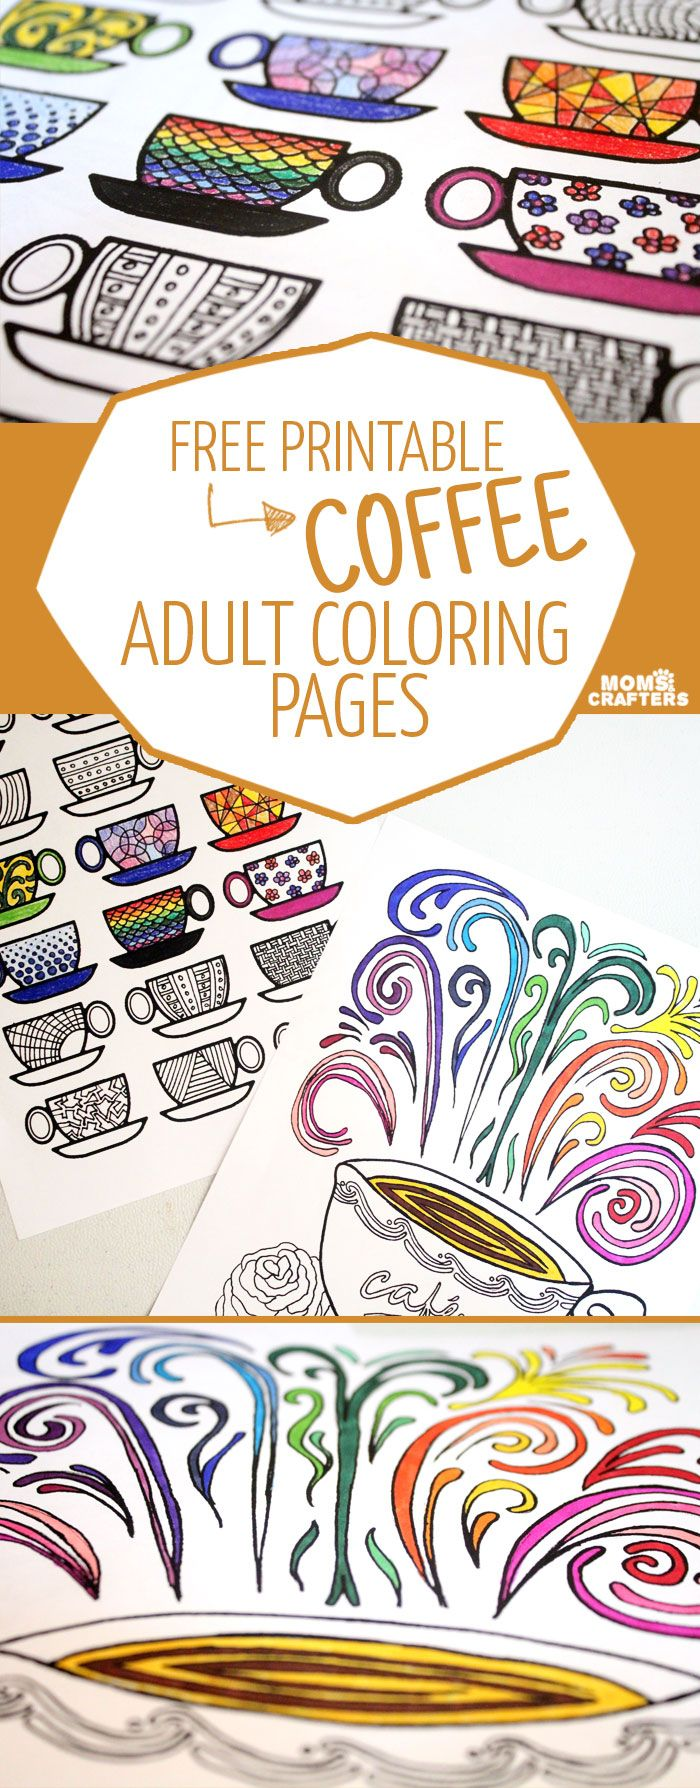 Colouring books for adults vancouver - Free Printable Coffee Coloring Pages For Adults